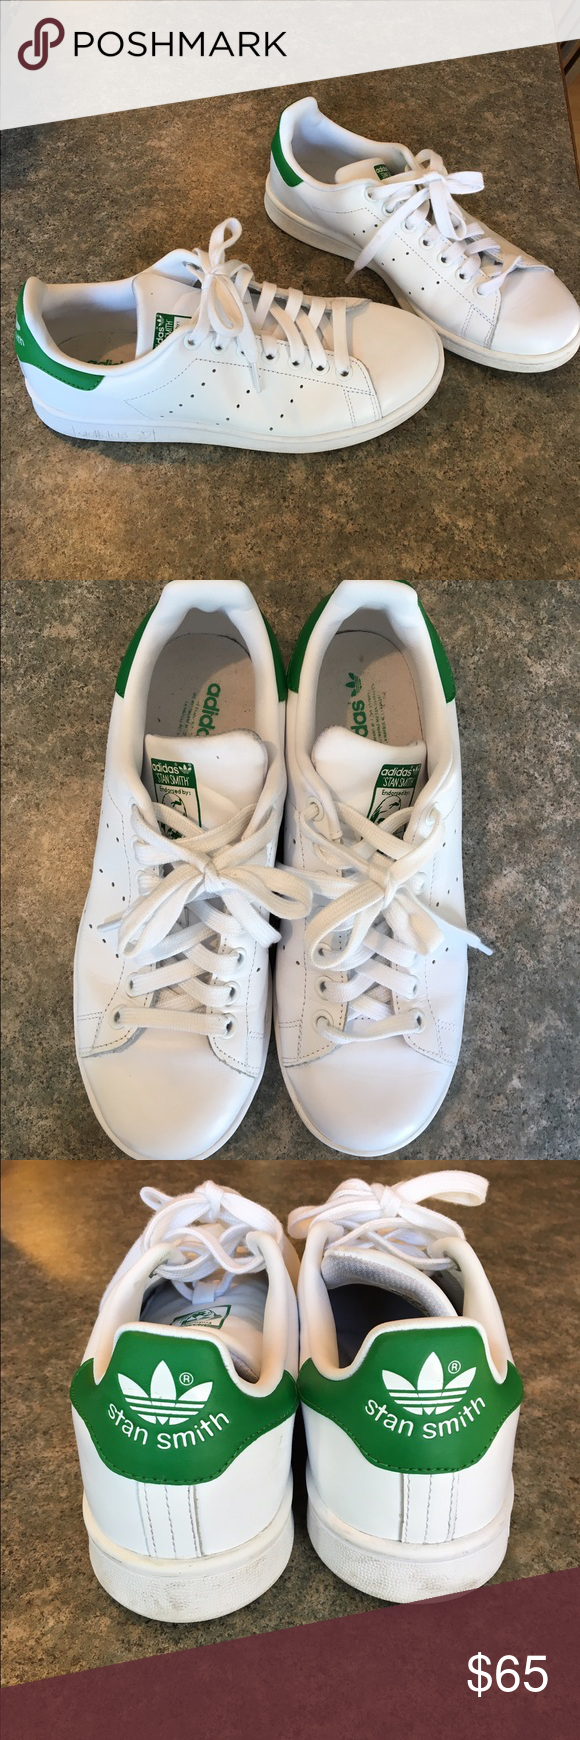 Stan Smith Adidas white & green tennis shoe size 6 Adidas Stan Smith tennis shoes size 6 but I'm an 8 and they fit me perfectly. Adidas Shoes Athletic Shoes